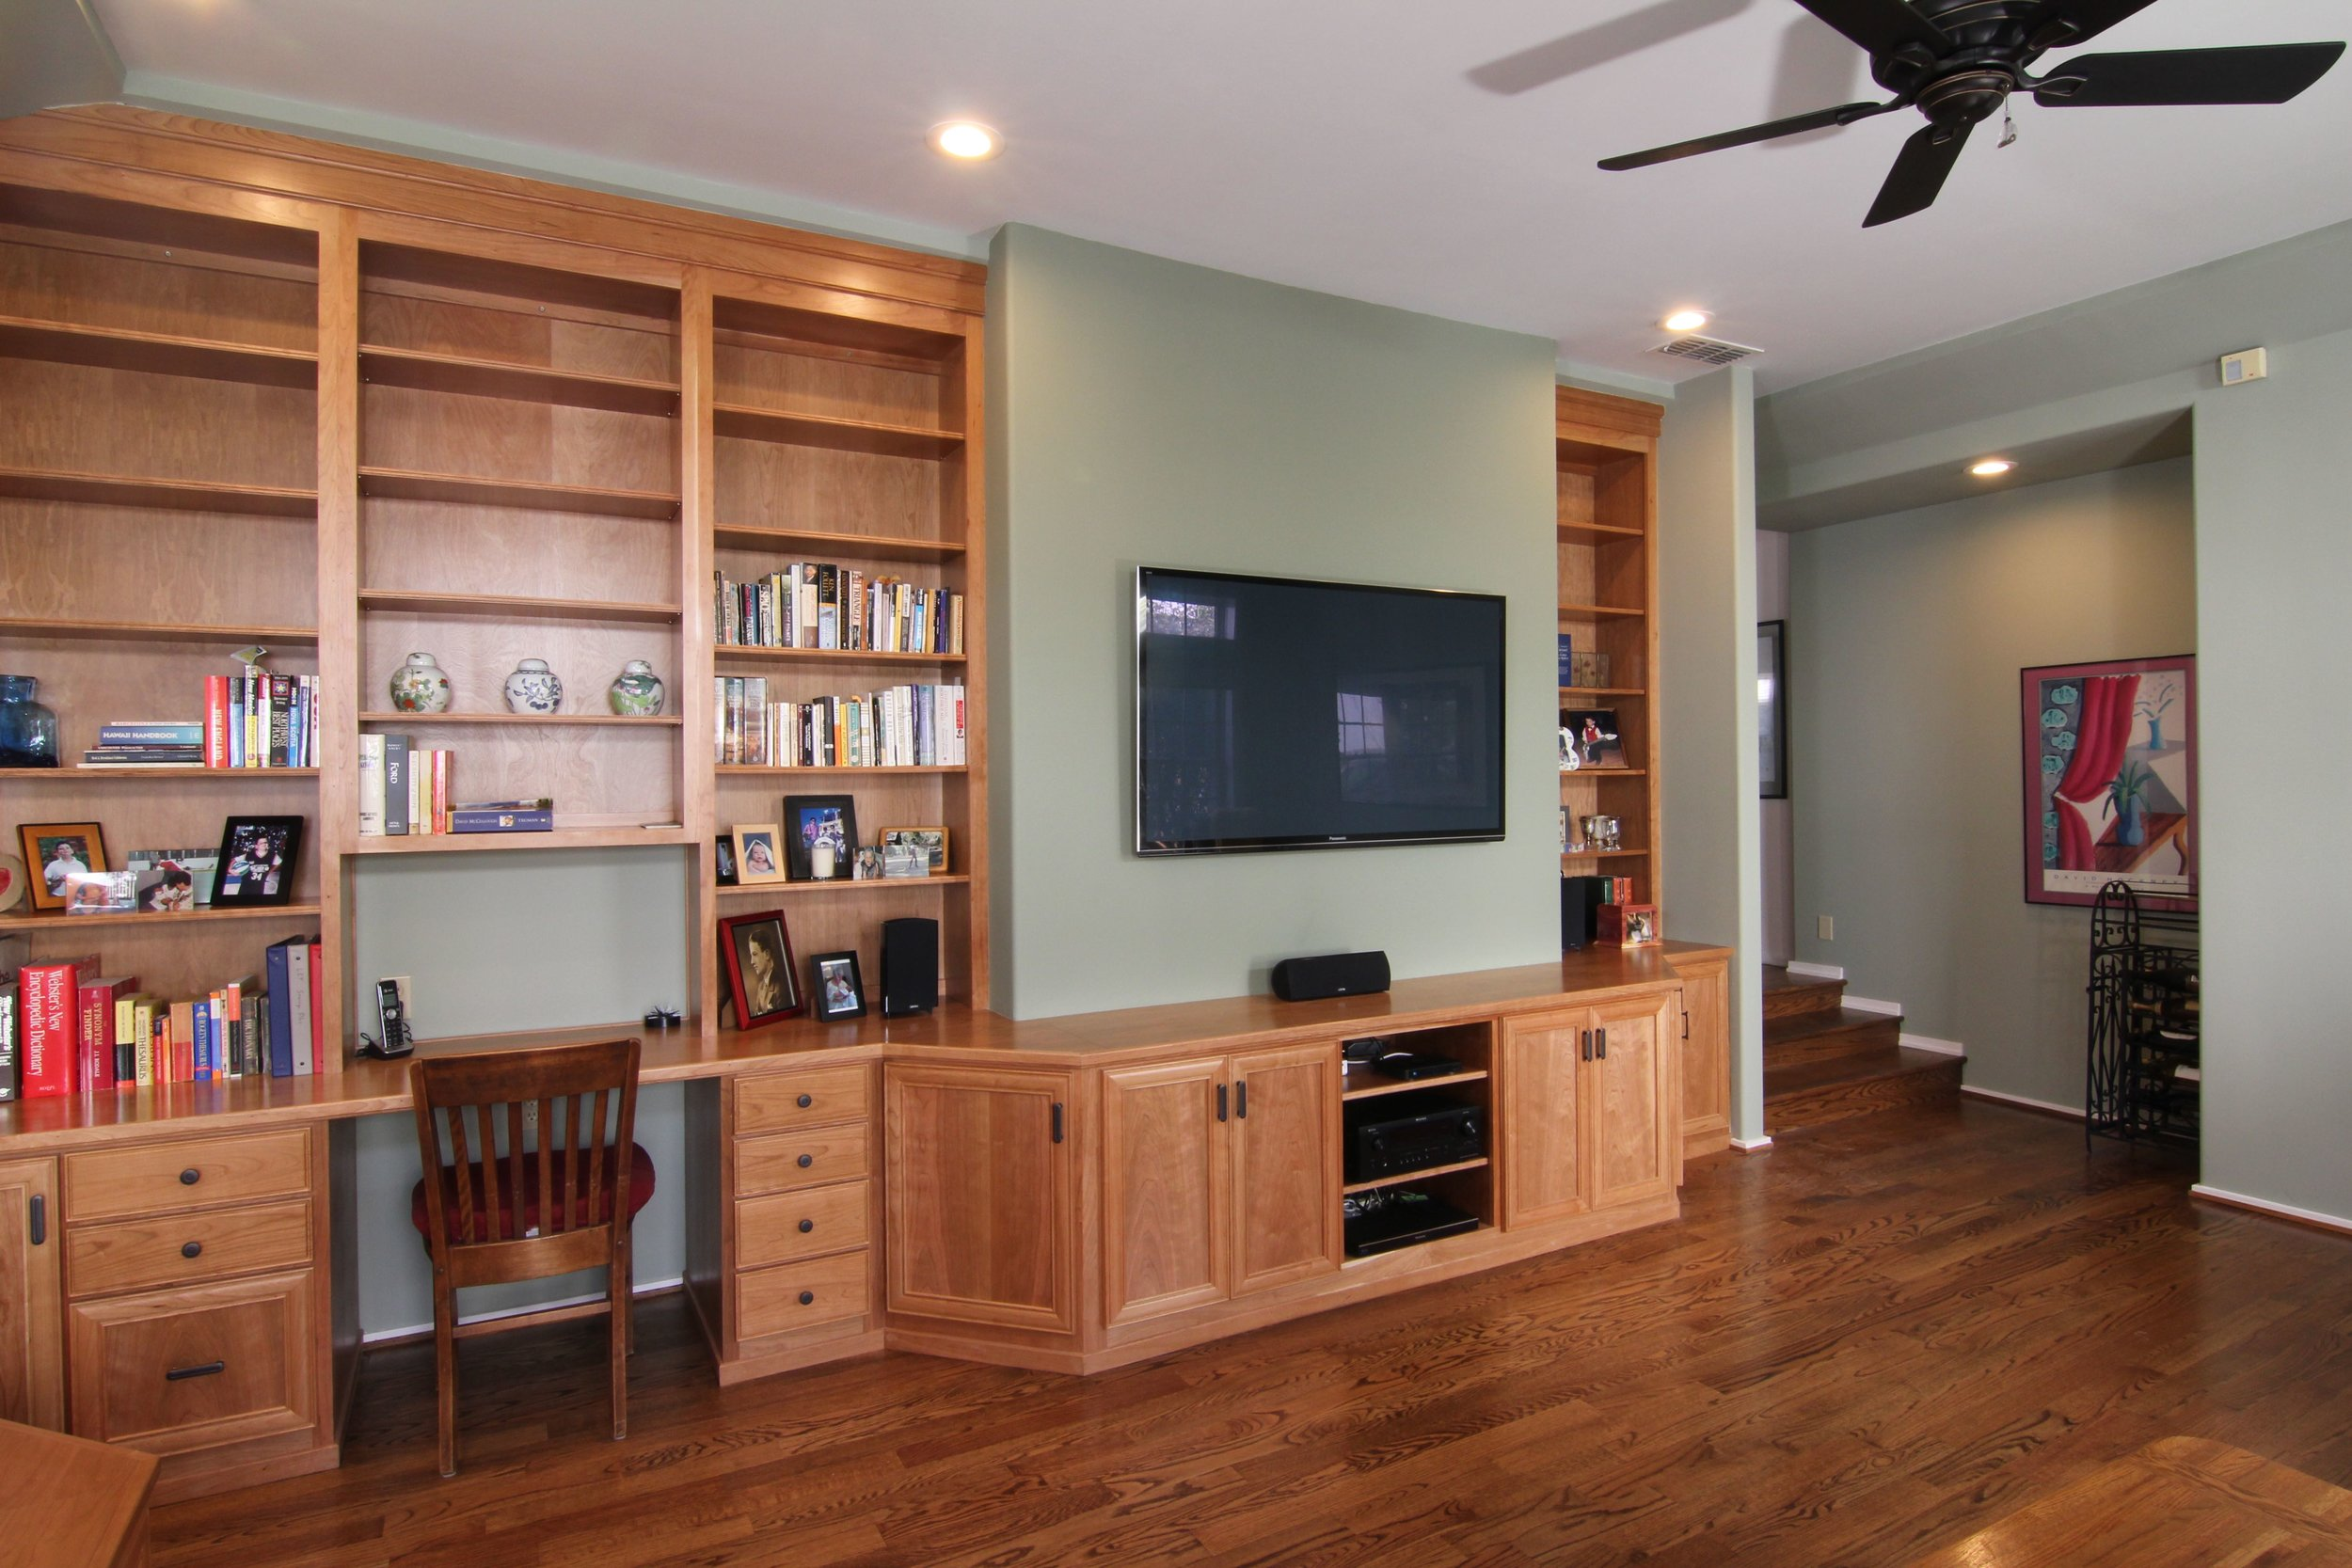 West Land Park Drive family room: AFTER